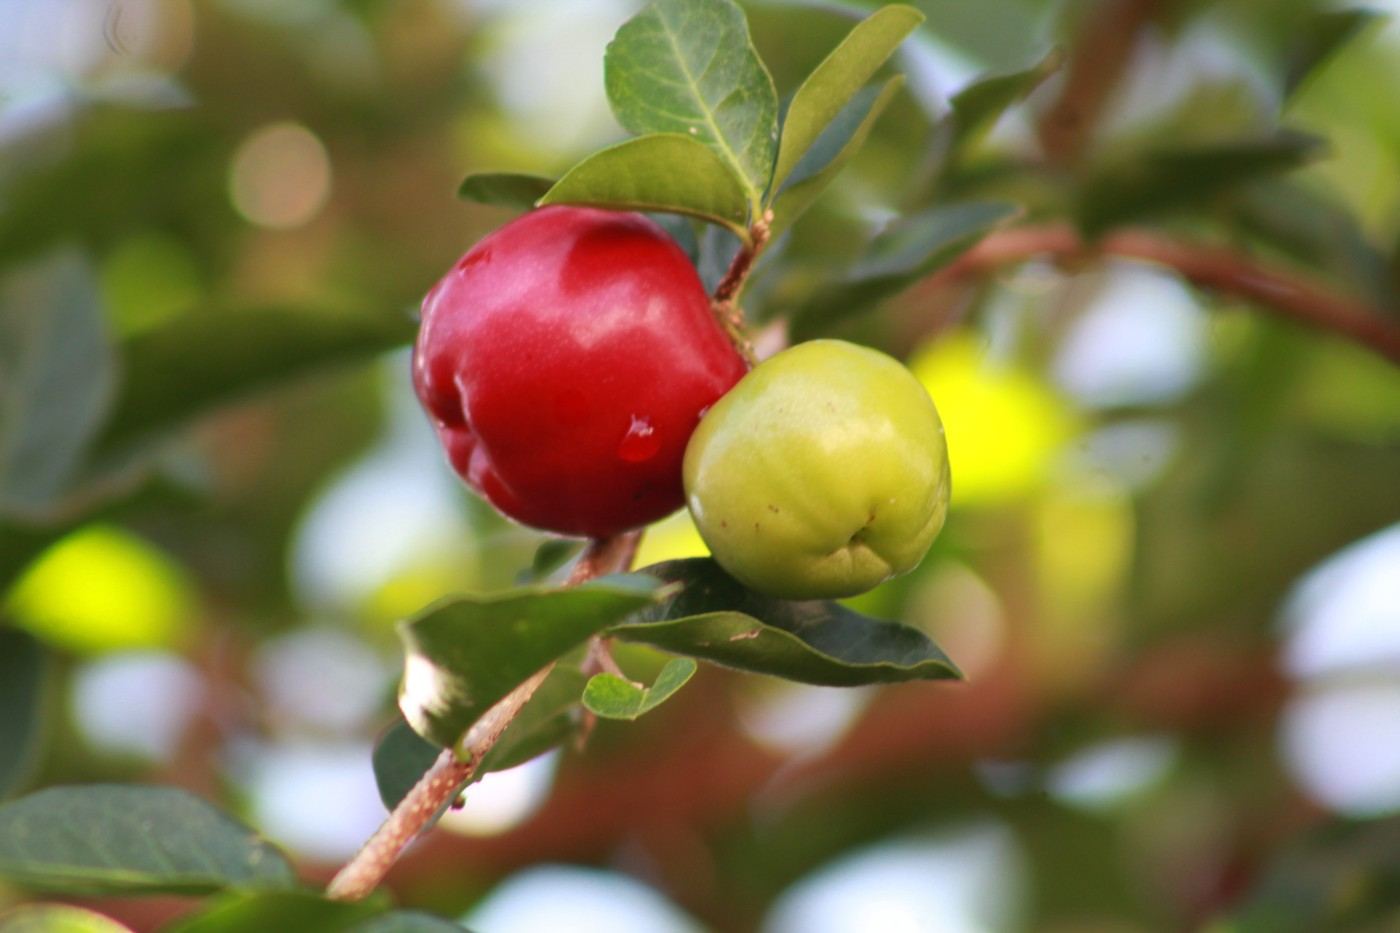 Two plums on a tree, one ripe and one unripe